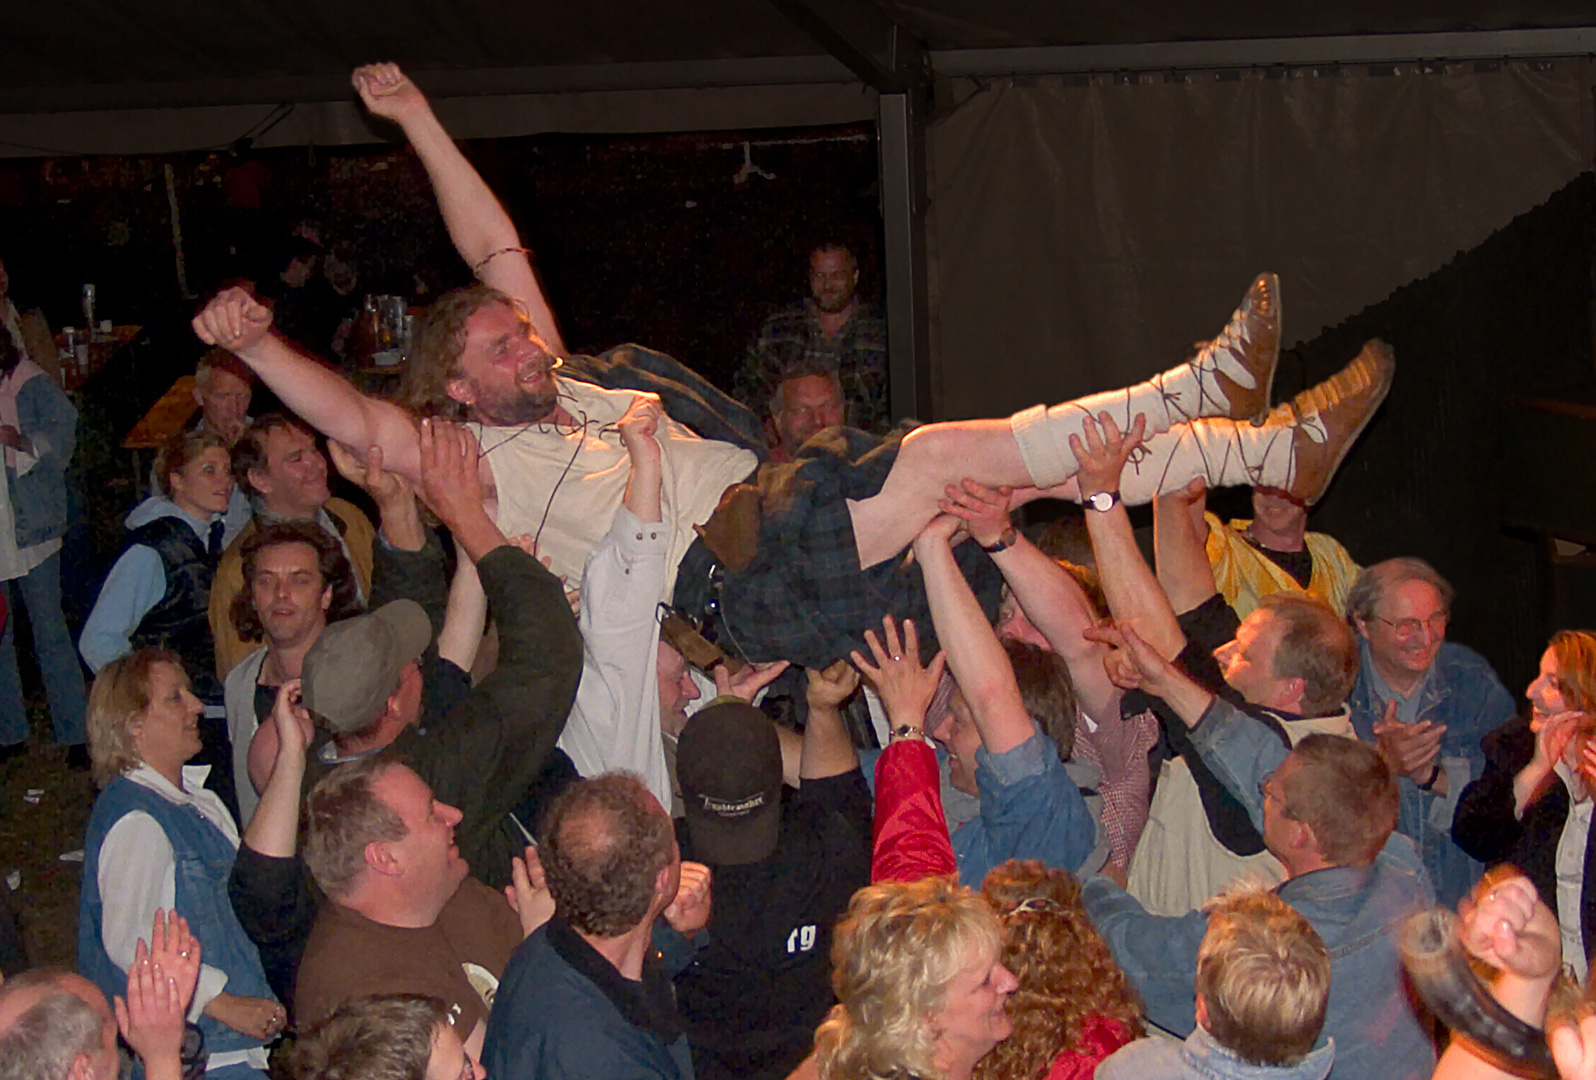 TBT William Crowdsurfing